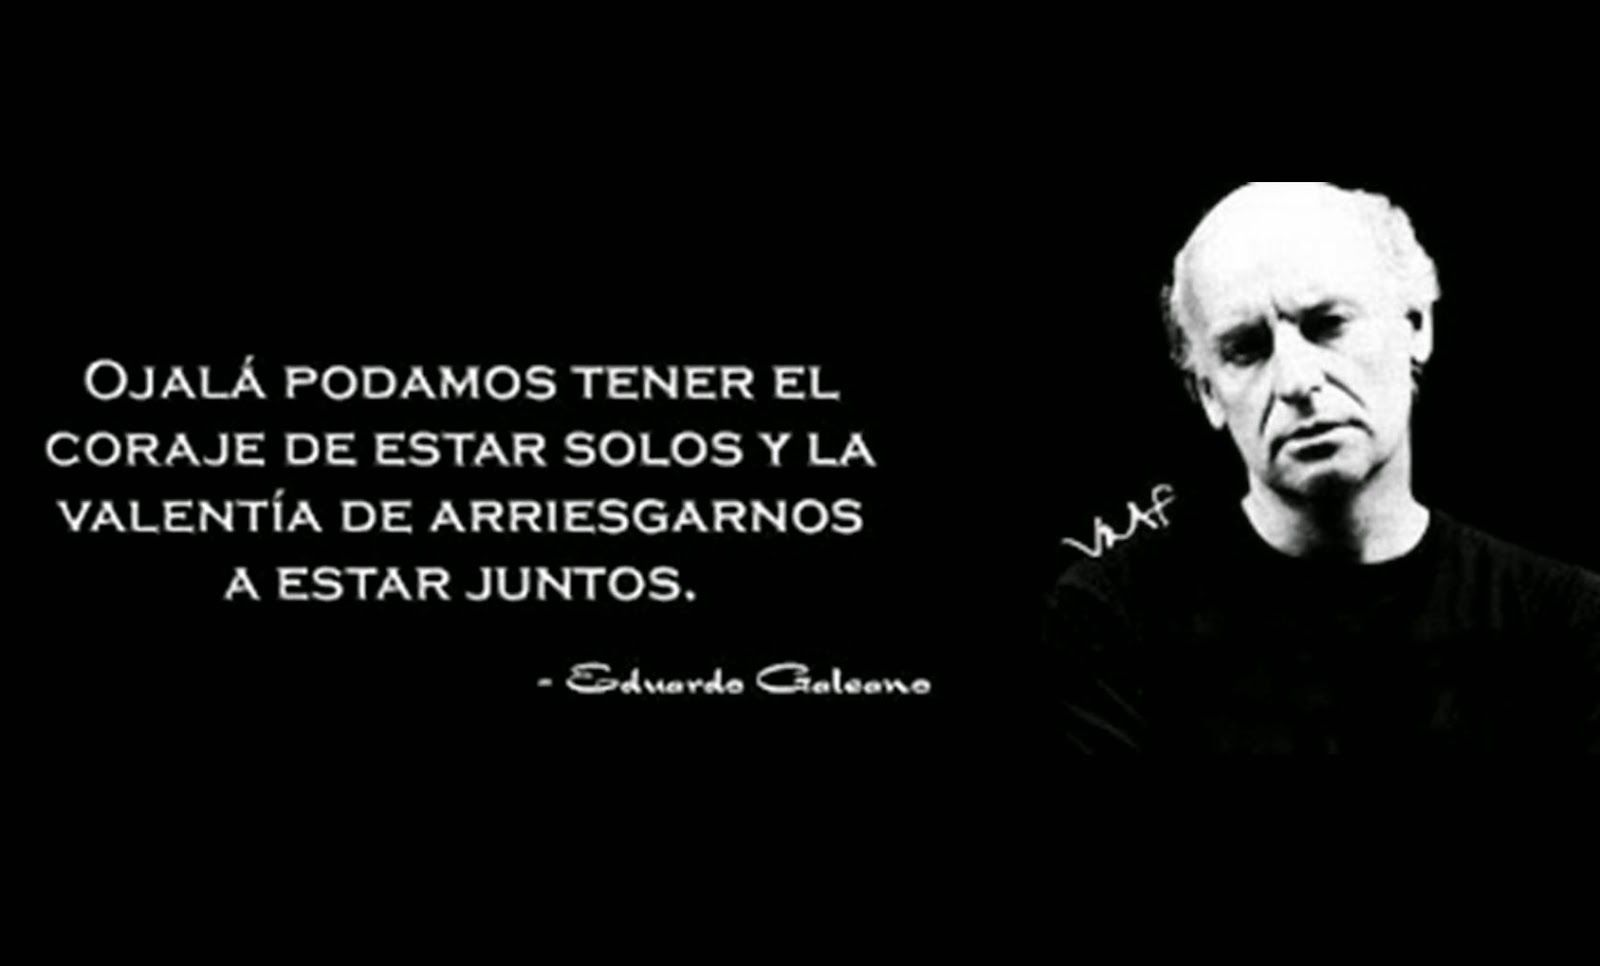 Casa De Euterpe Coraje Eduardo Galeano Faith In Humanity Memes Quotes Einstein